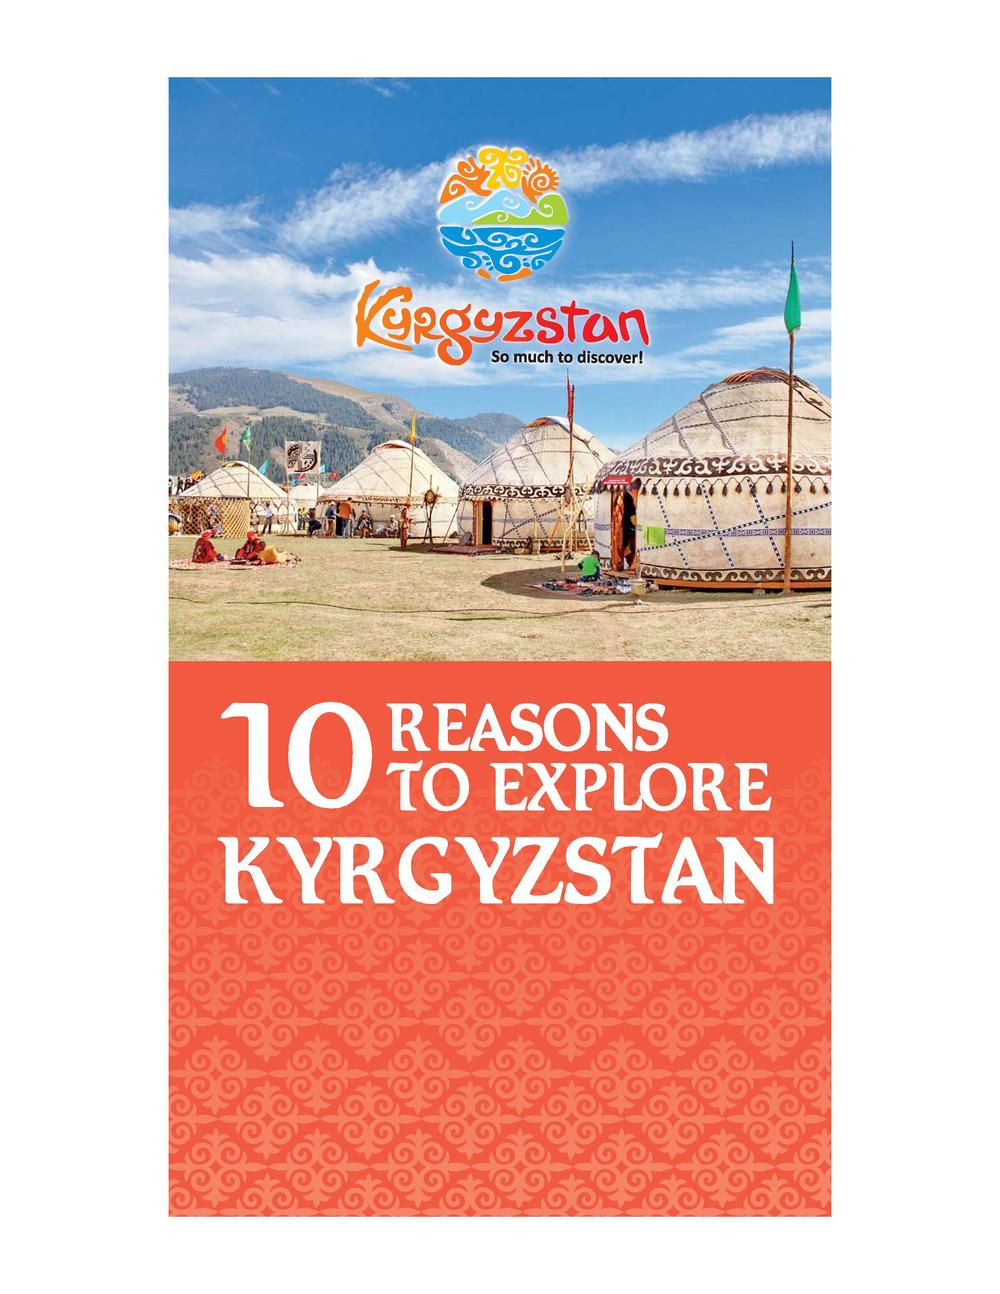 10 reasons to explore Kyrgyzstan_SMALL-page-001.jpg